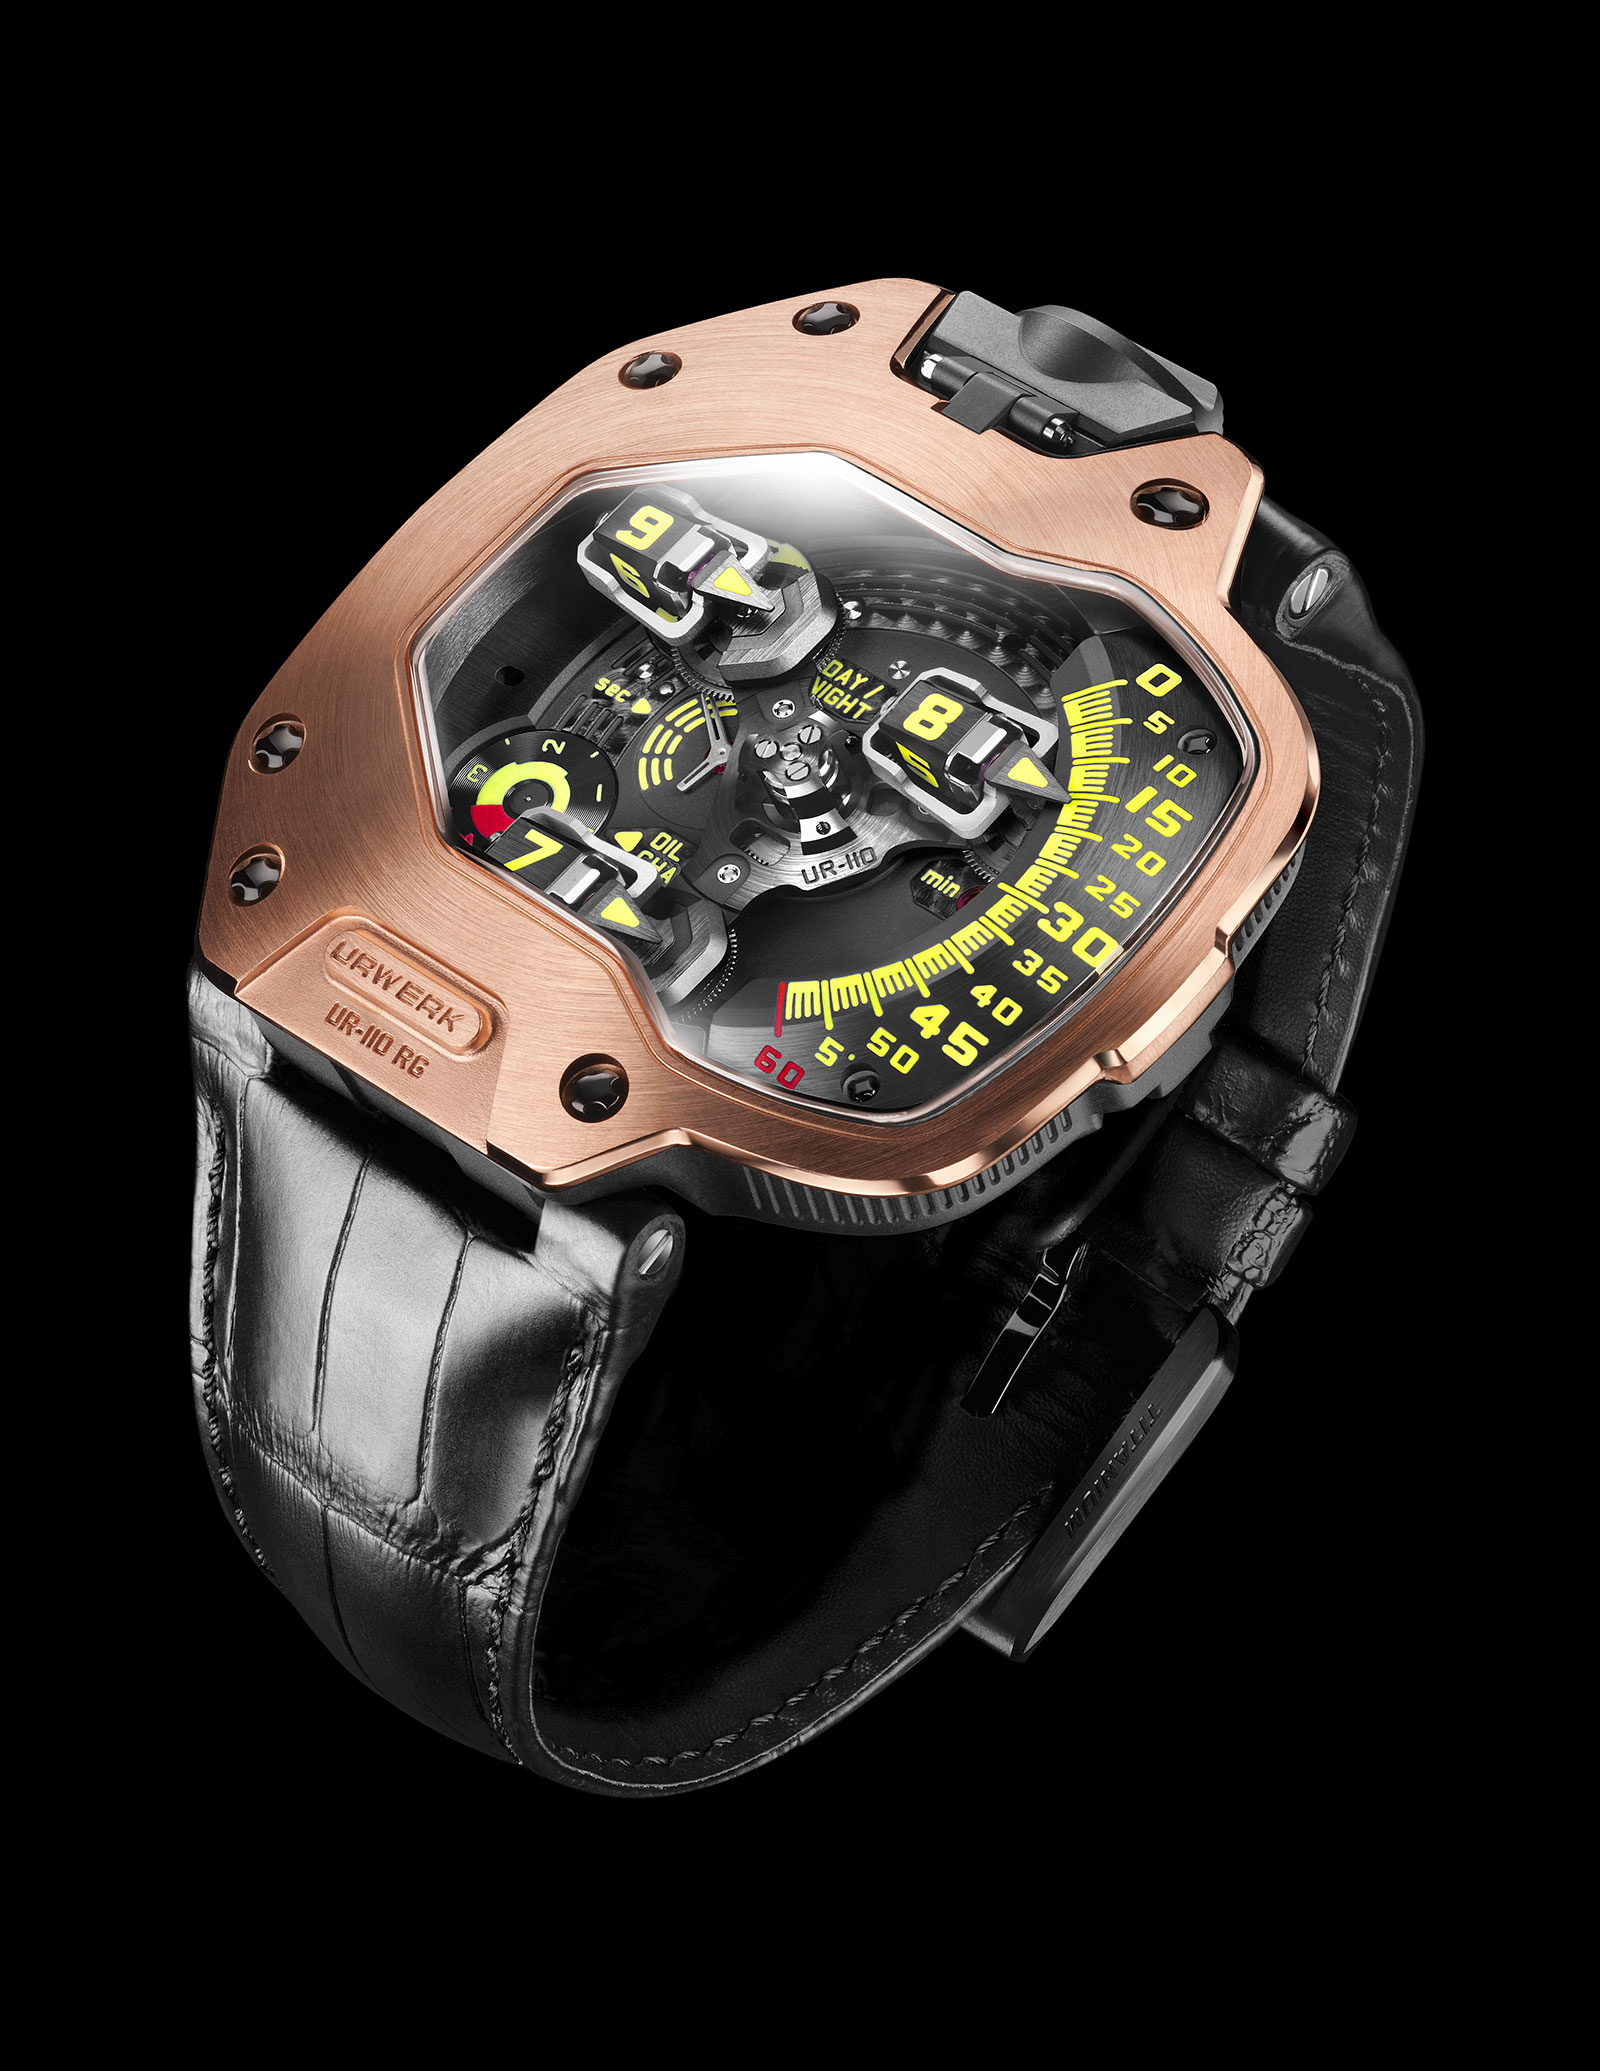 -ron-Man-Robert-Downey-Jr-Urwerk-Spider-Man-3.jpg